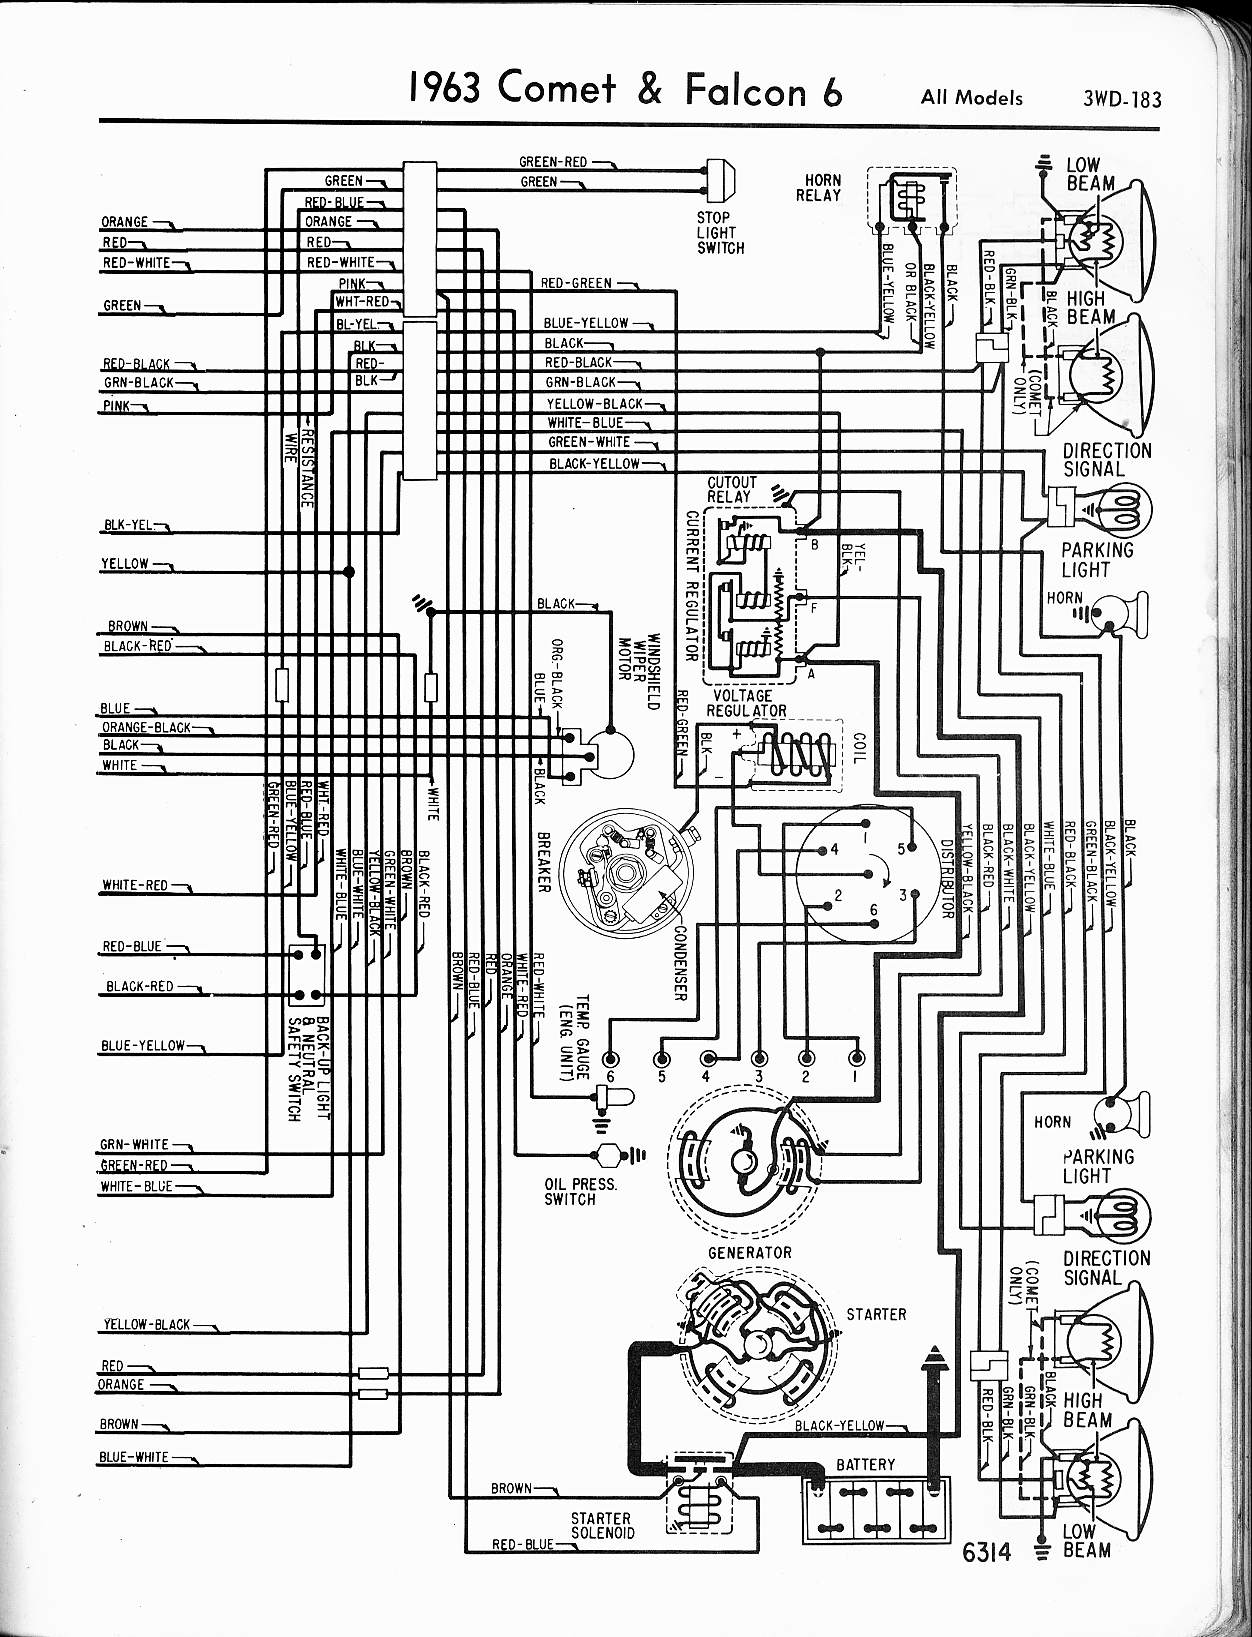 63 falcon wiring diagram fordforumsonline com ford falcon wiring diagram at gsmx.co